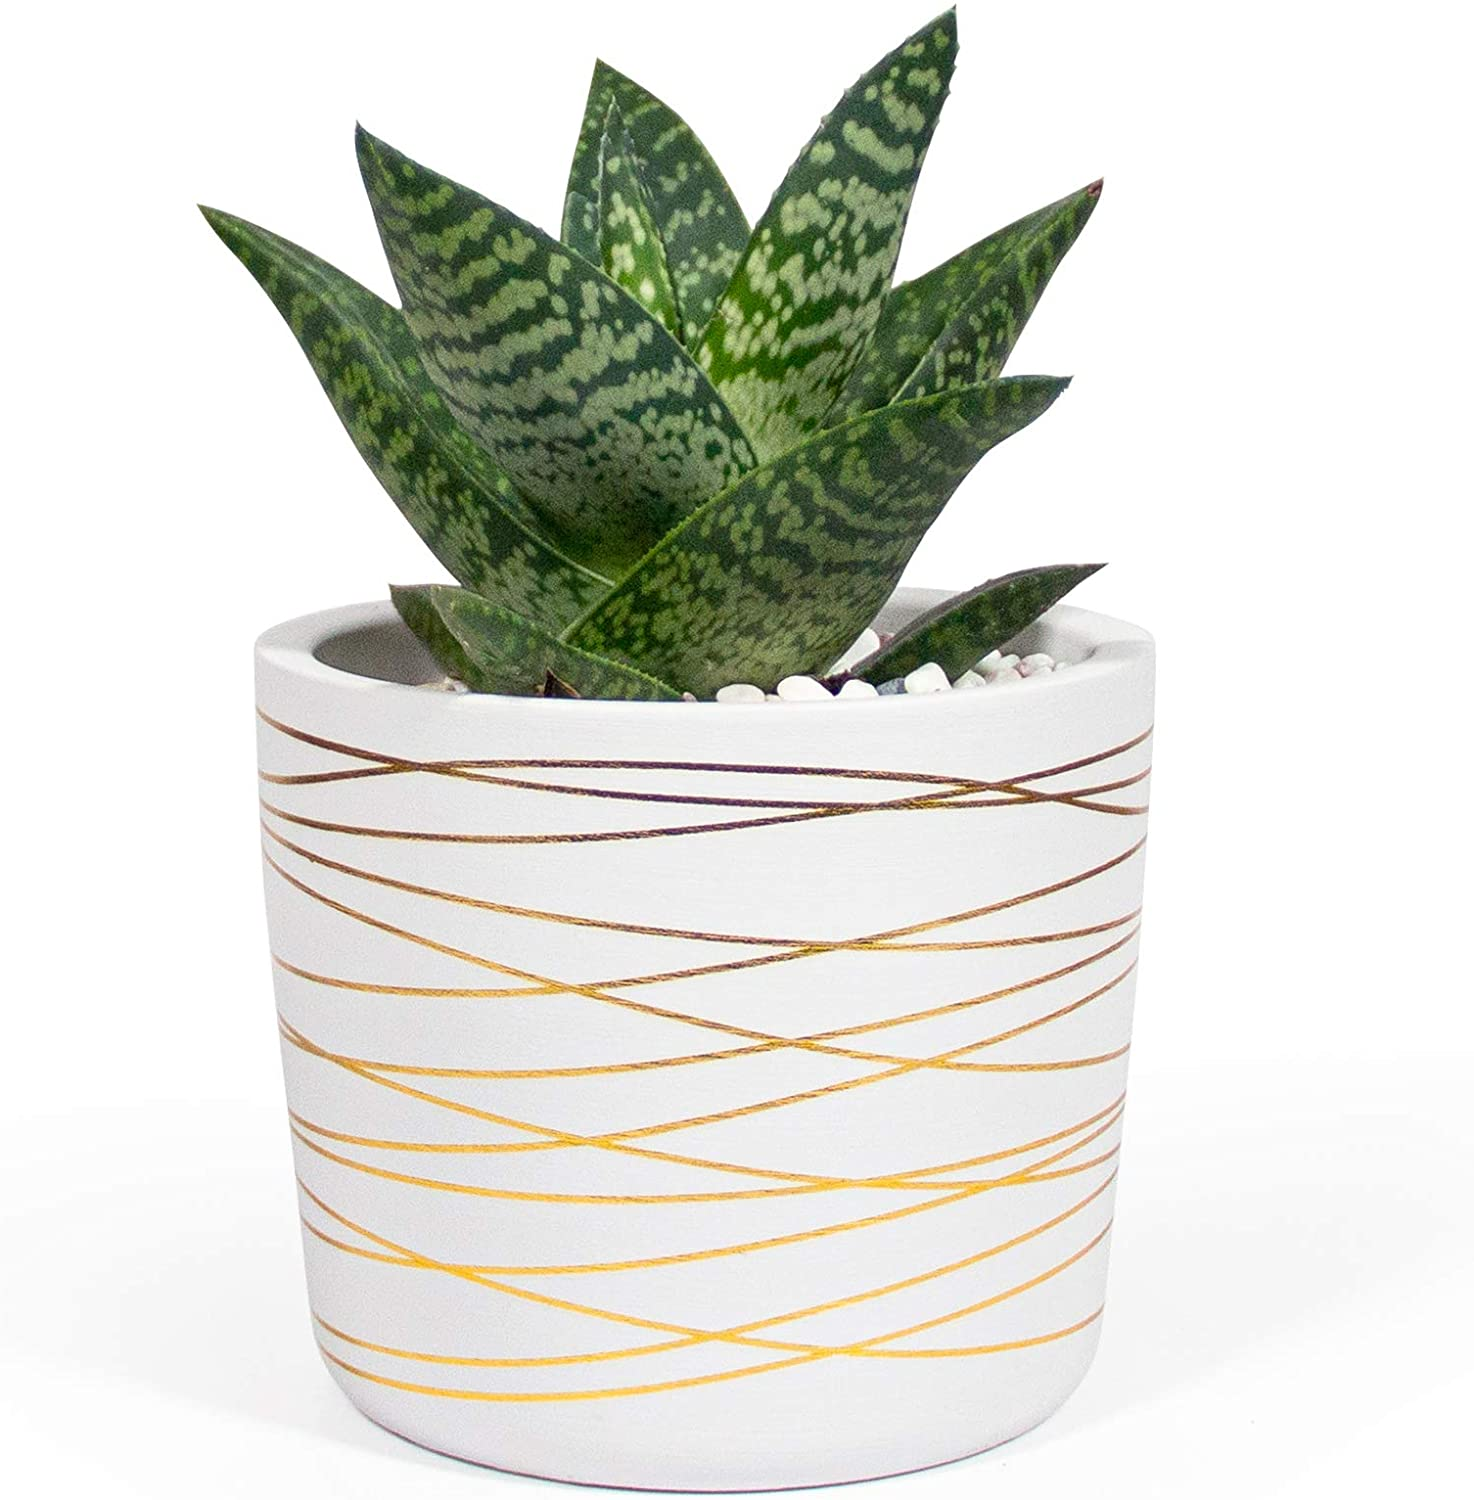 Willowy 6 Inch Ceramic Plant Pot - Small White Planter with Gold Stripes - Drainage Plug and Decorative Pebbles Included…